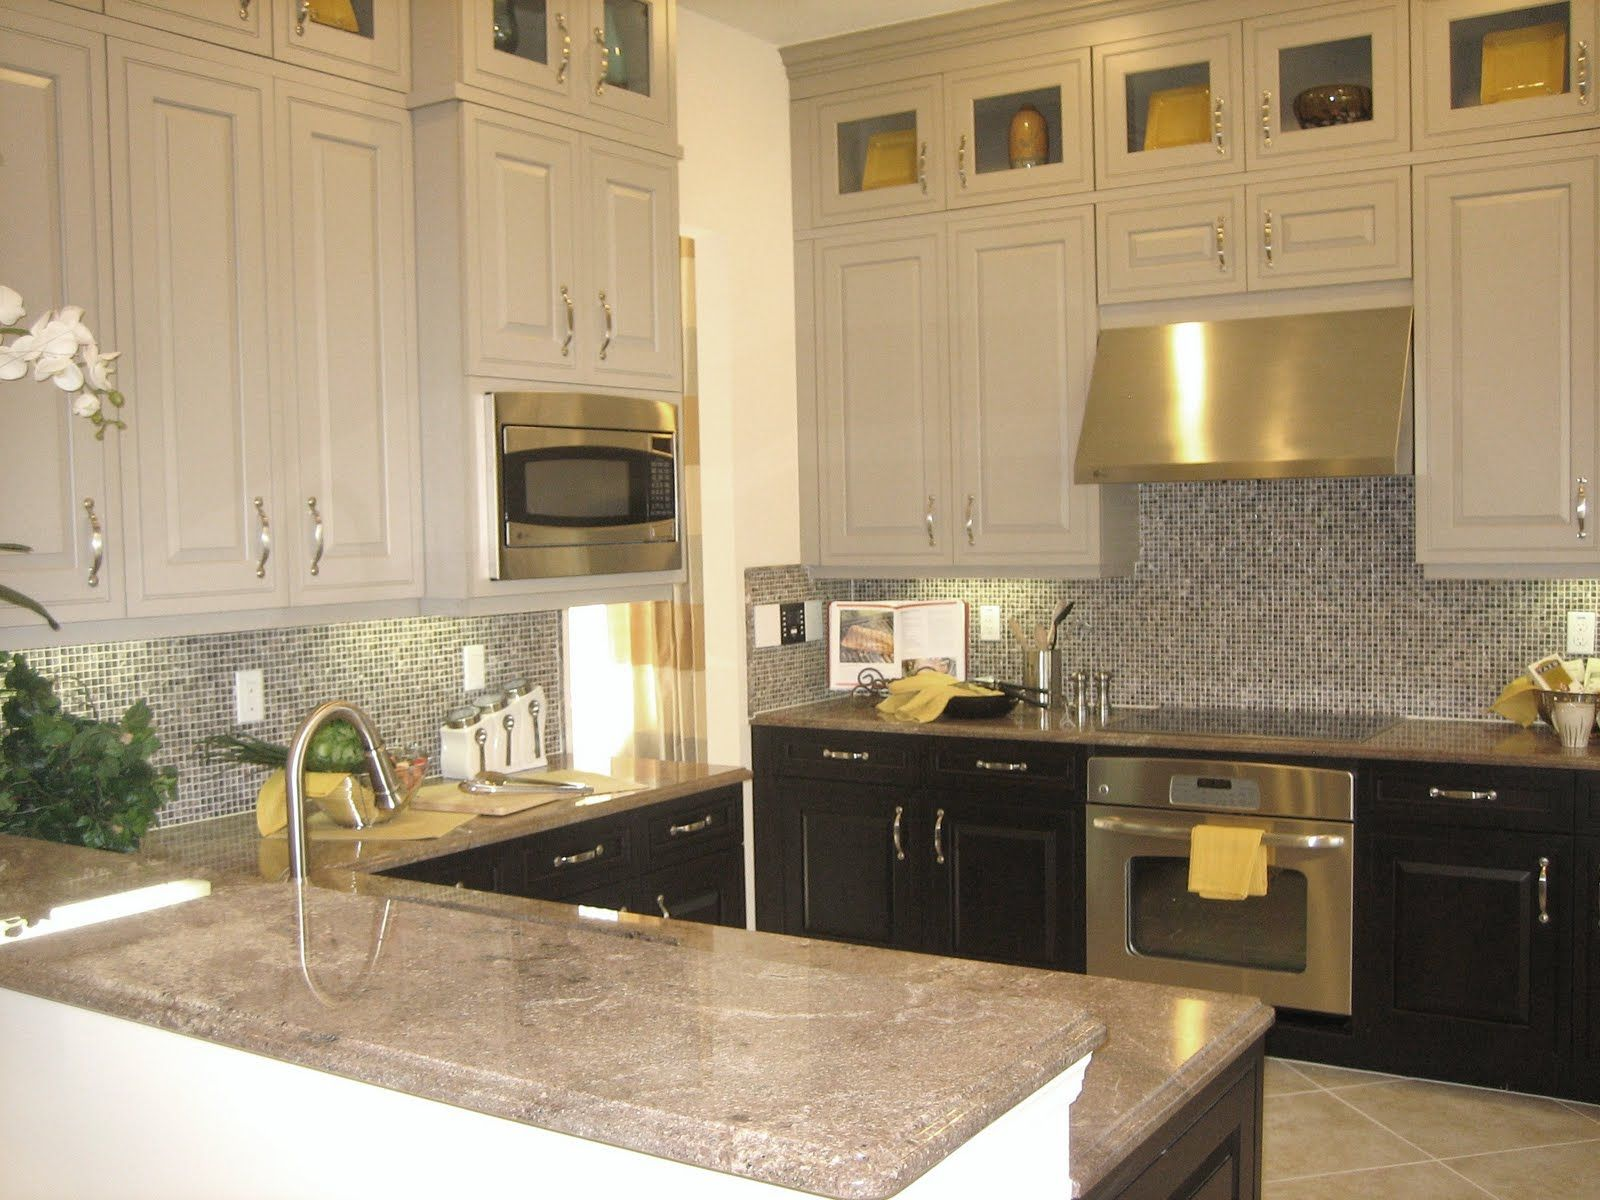 kitchen two toned kitchen cabinets best images about Kitchen on Pinterest Maple floors Islands and Two tone kitchen cabinets